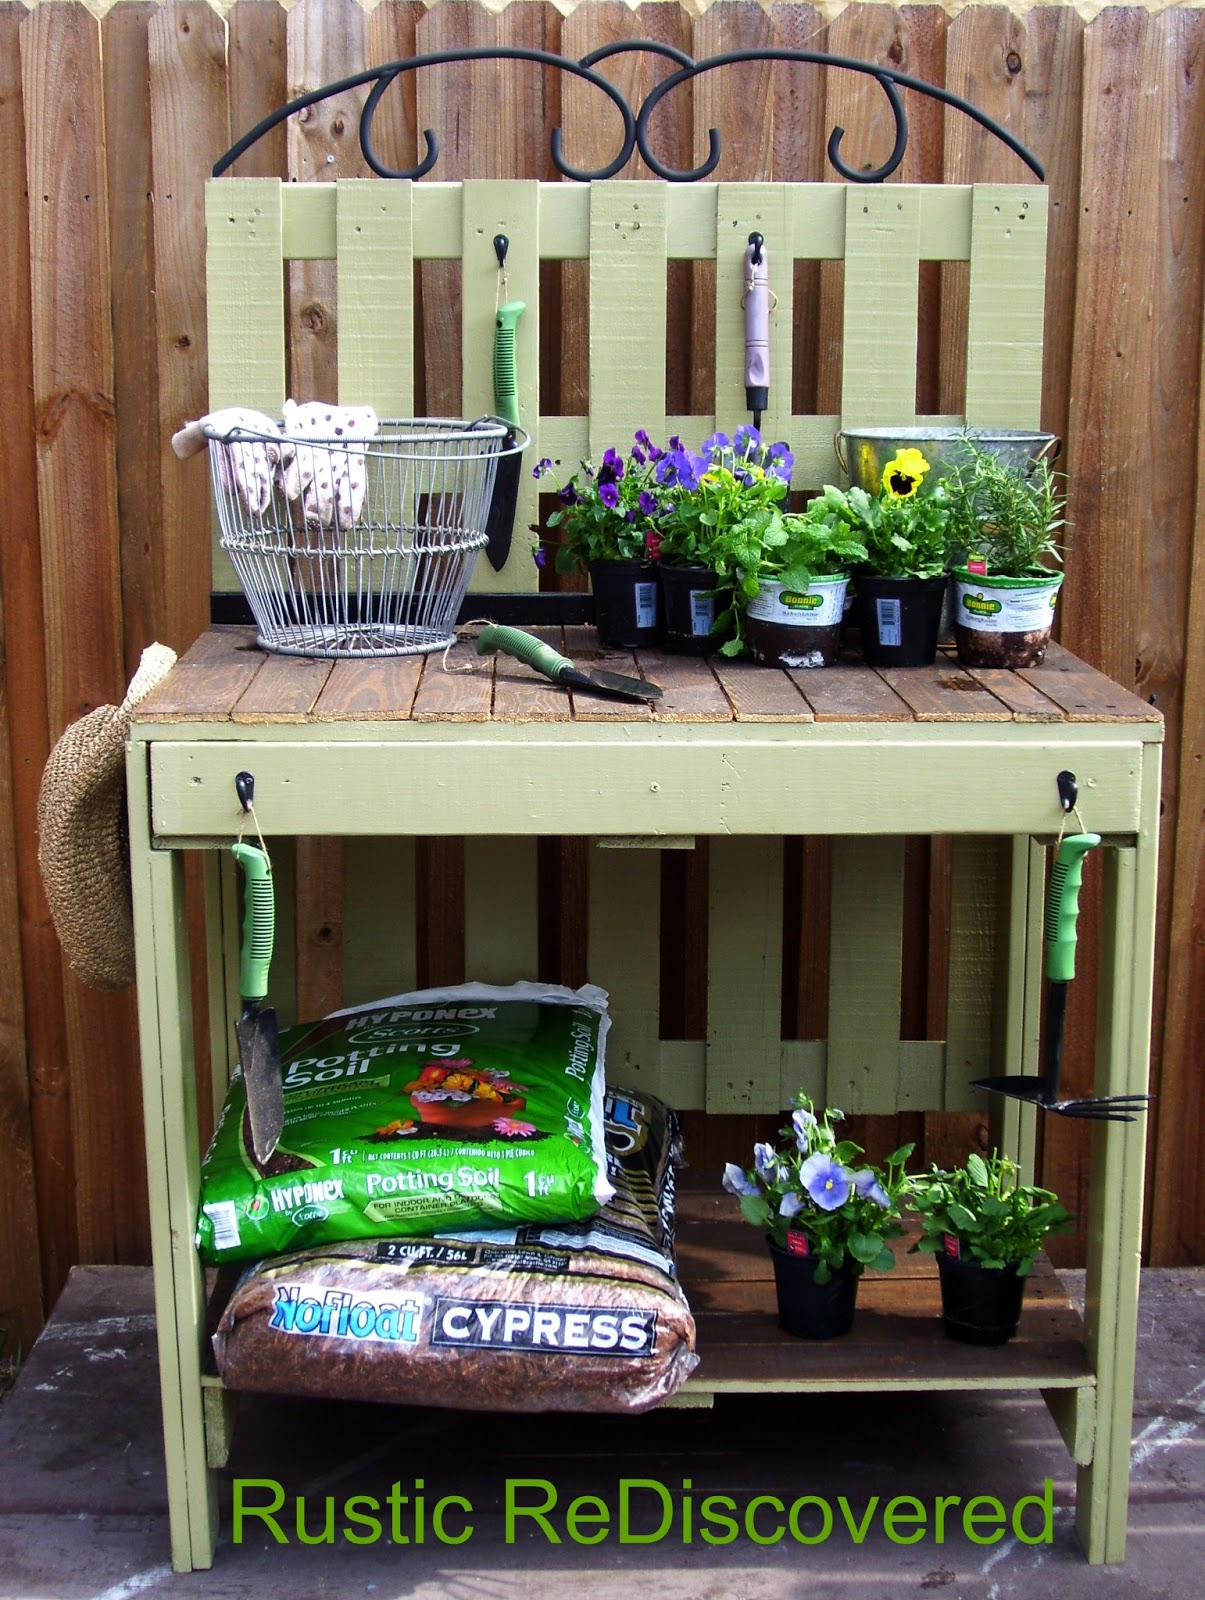 Pallet potting bench - Rustic ReDiscovered